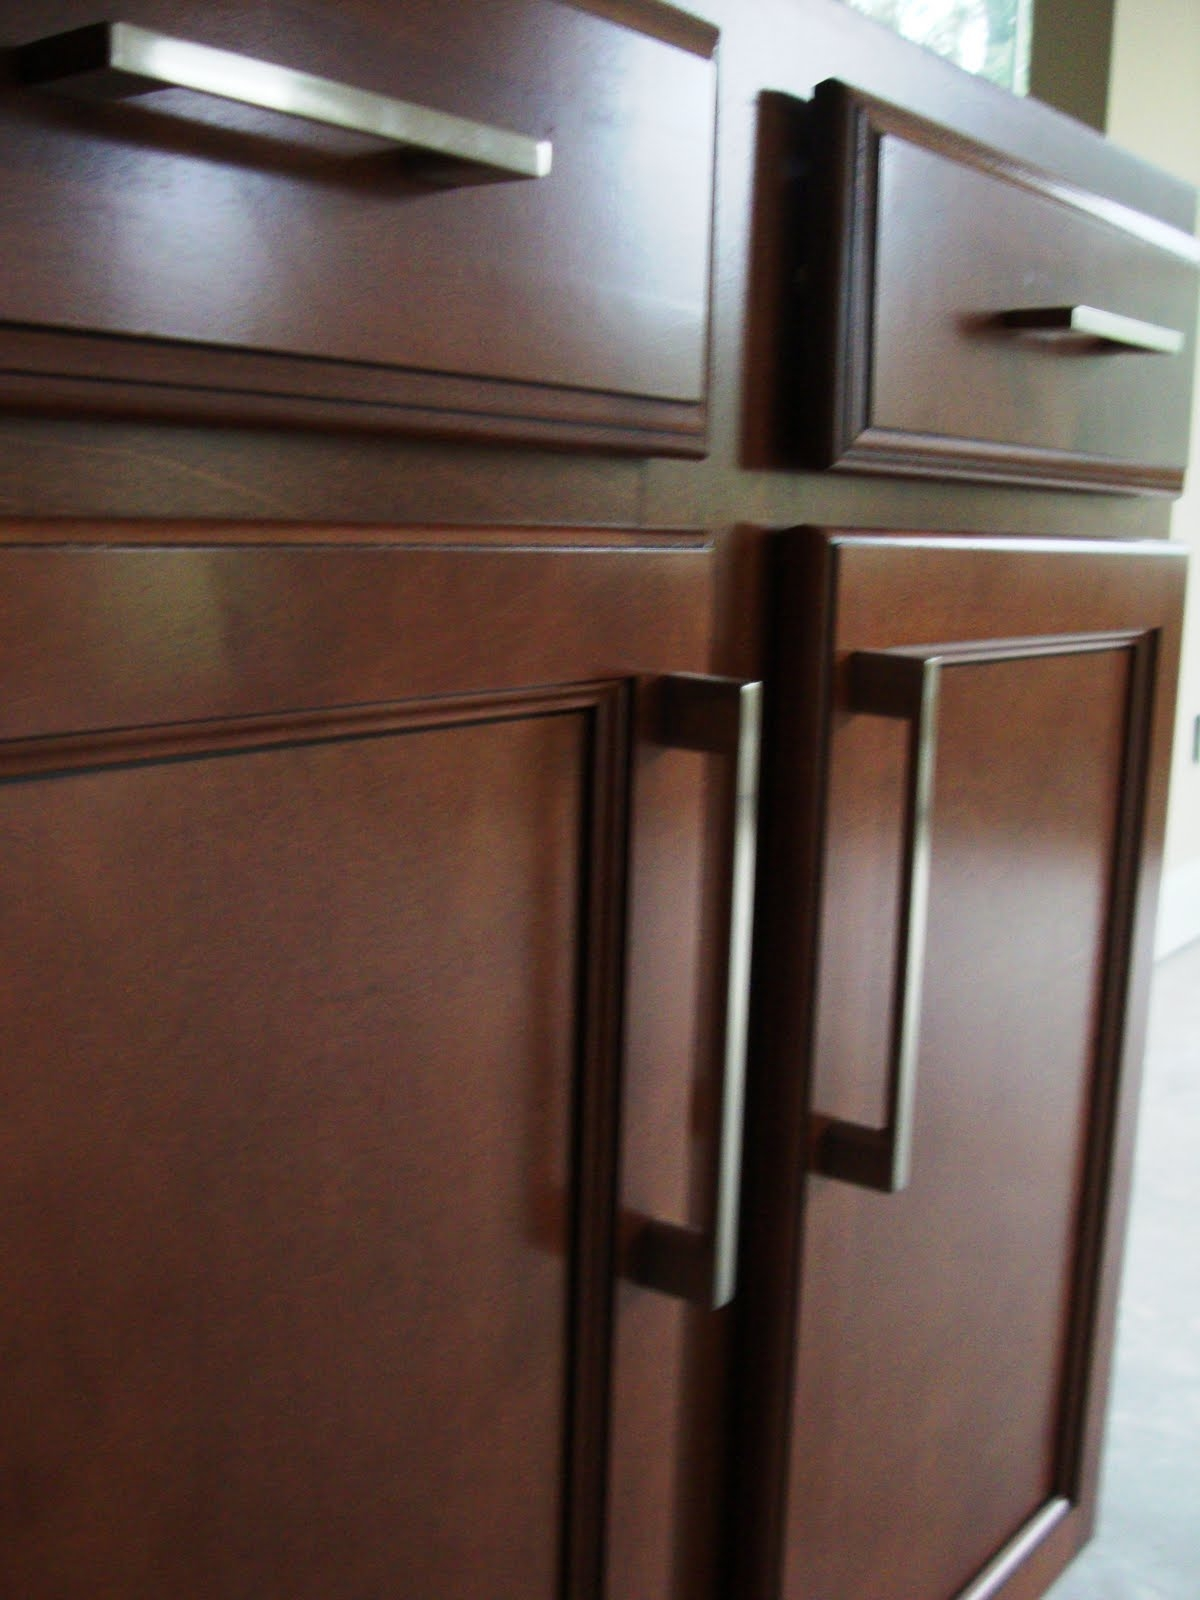 Photos Of Kitchen Cabinets With Handles